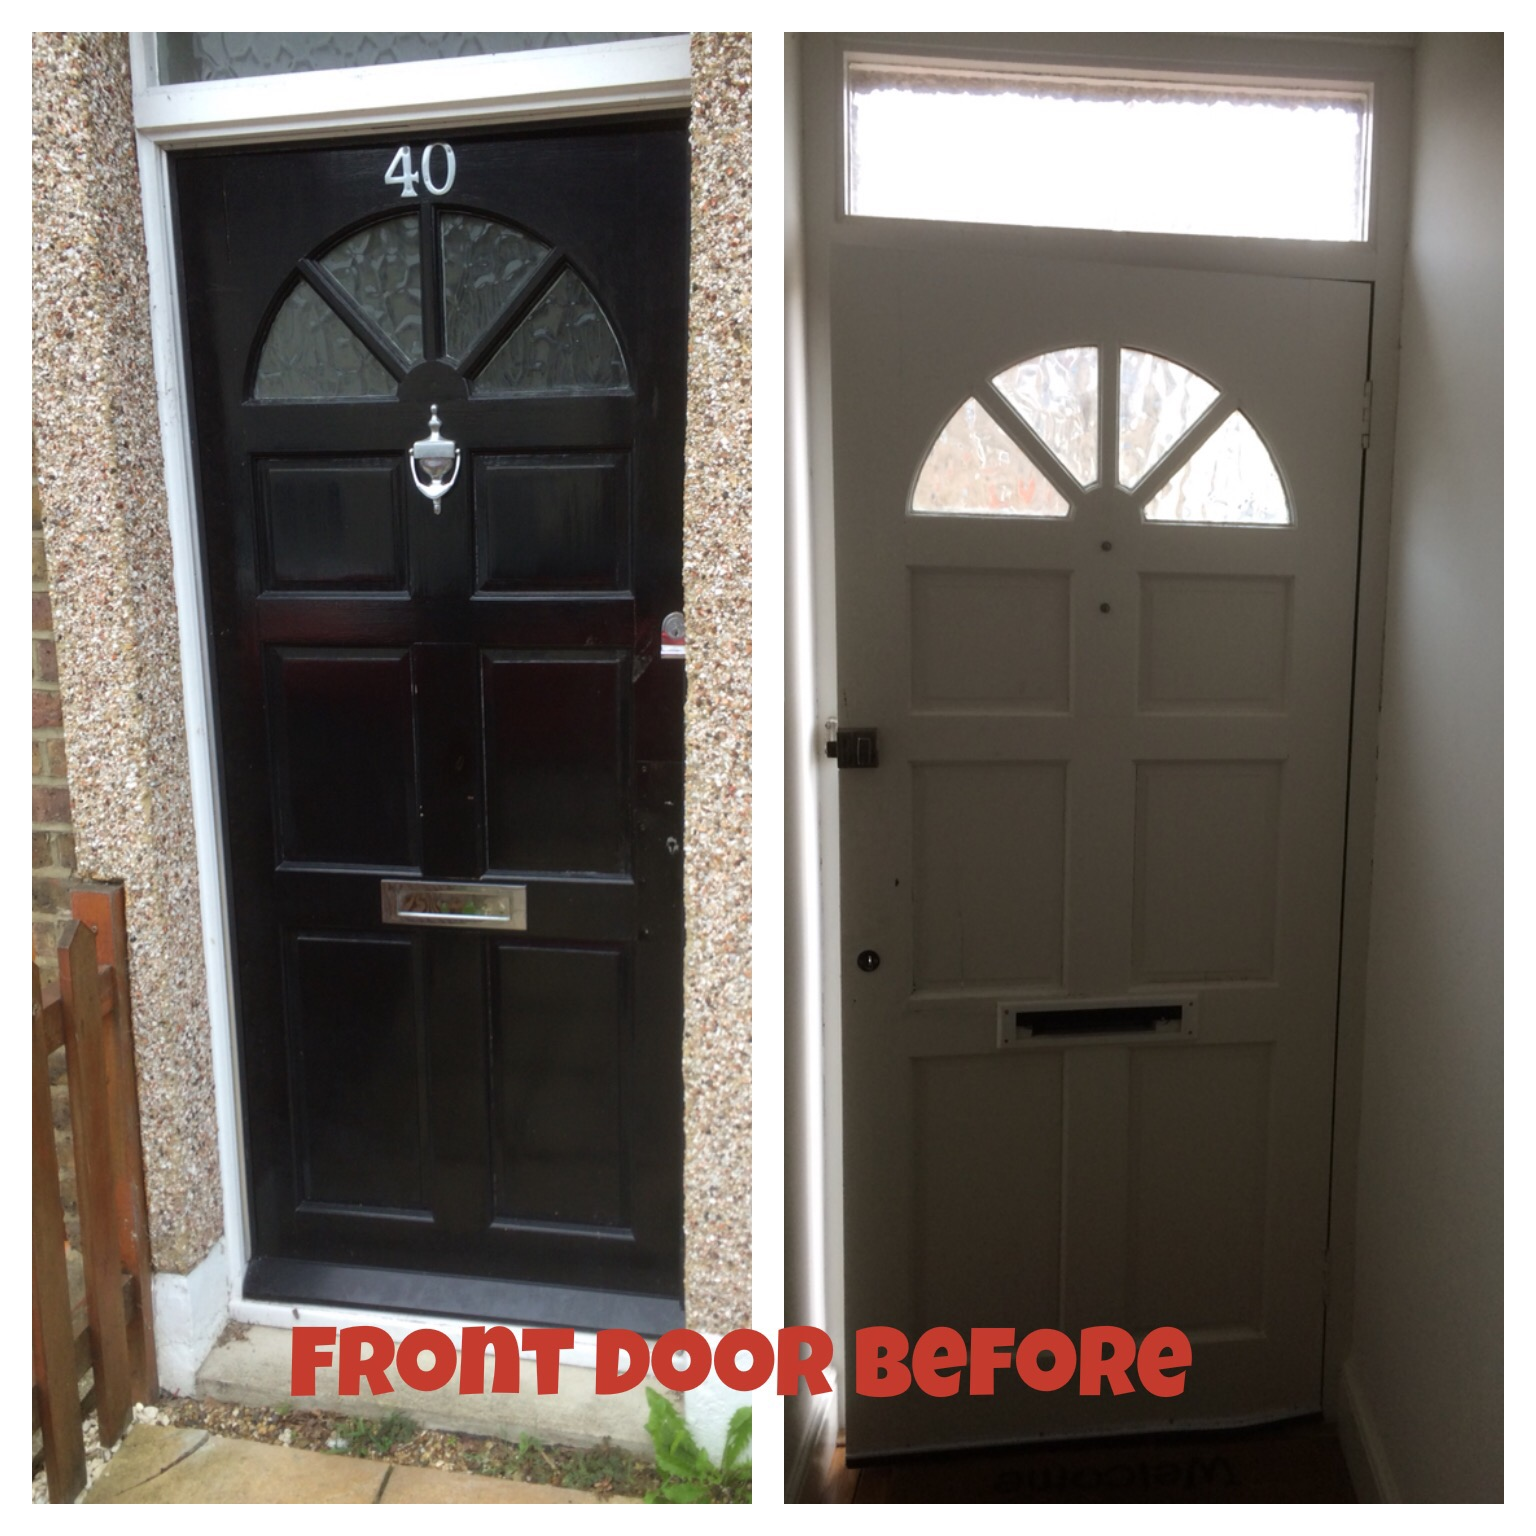 Of course new doors are damn expensive